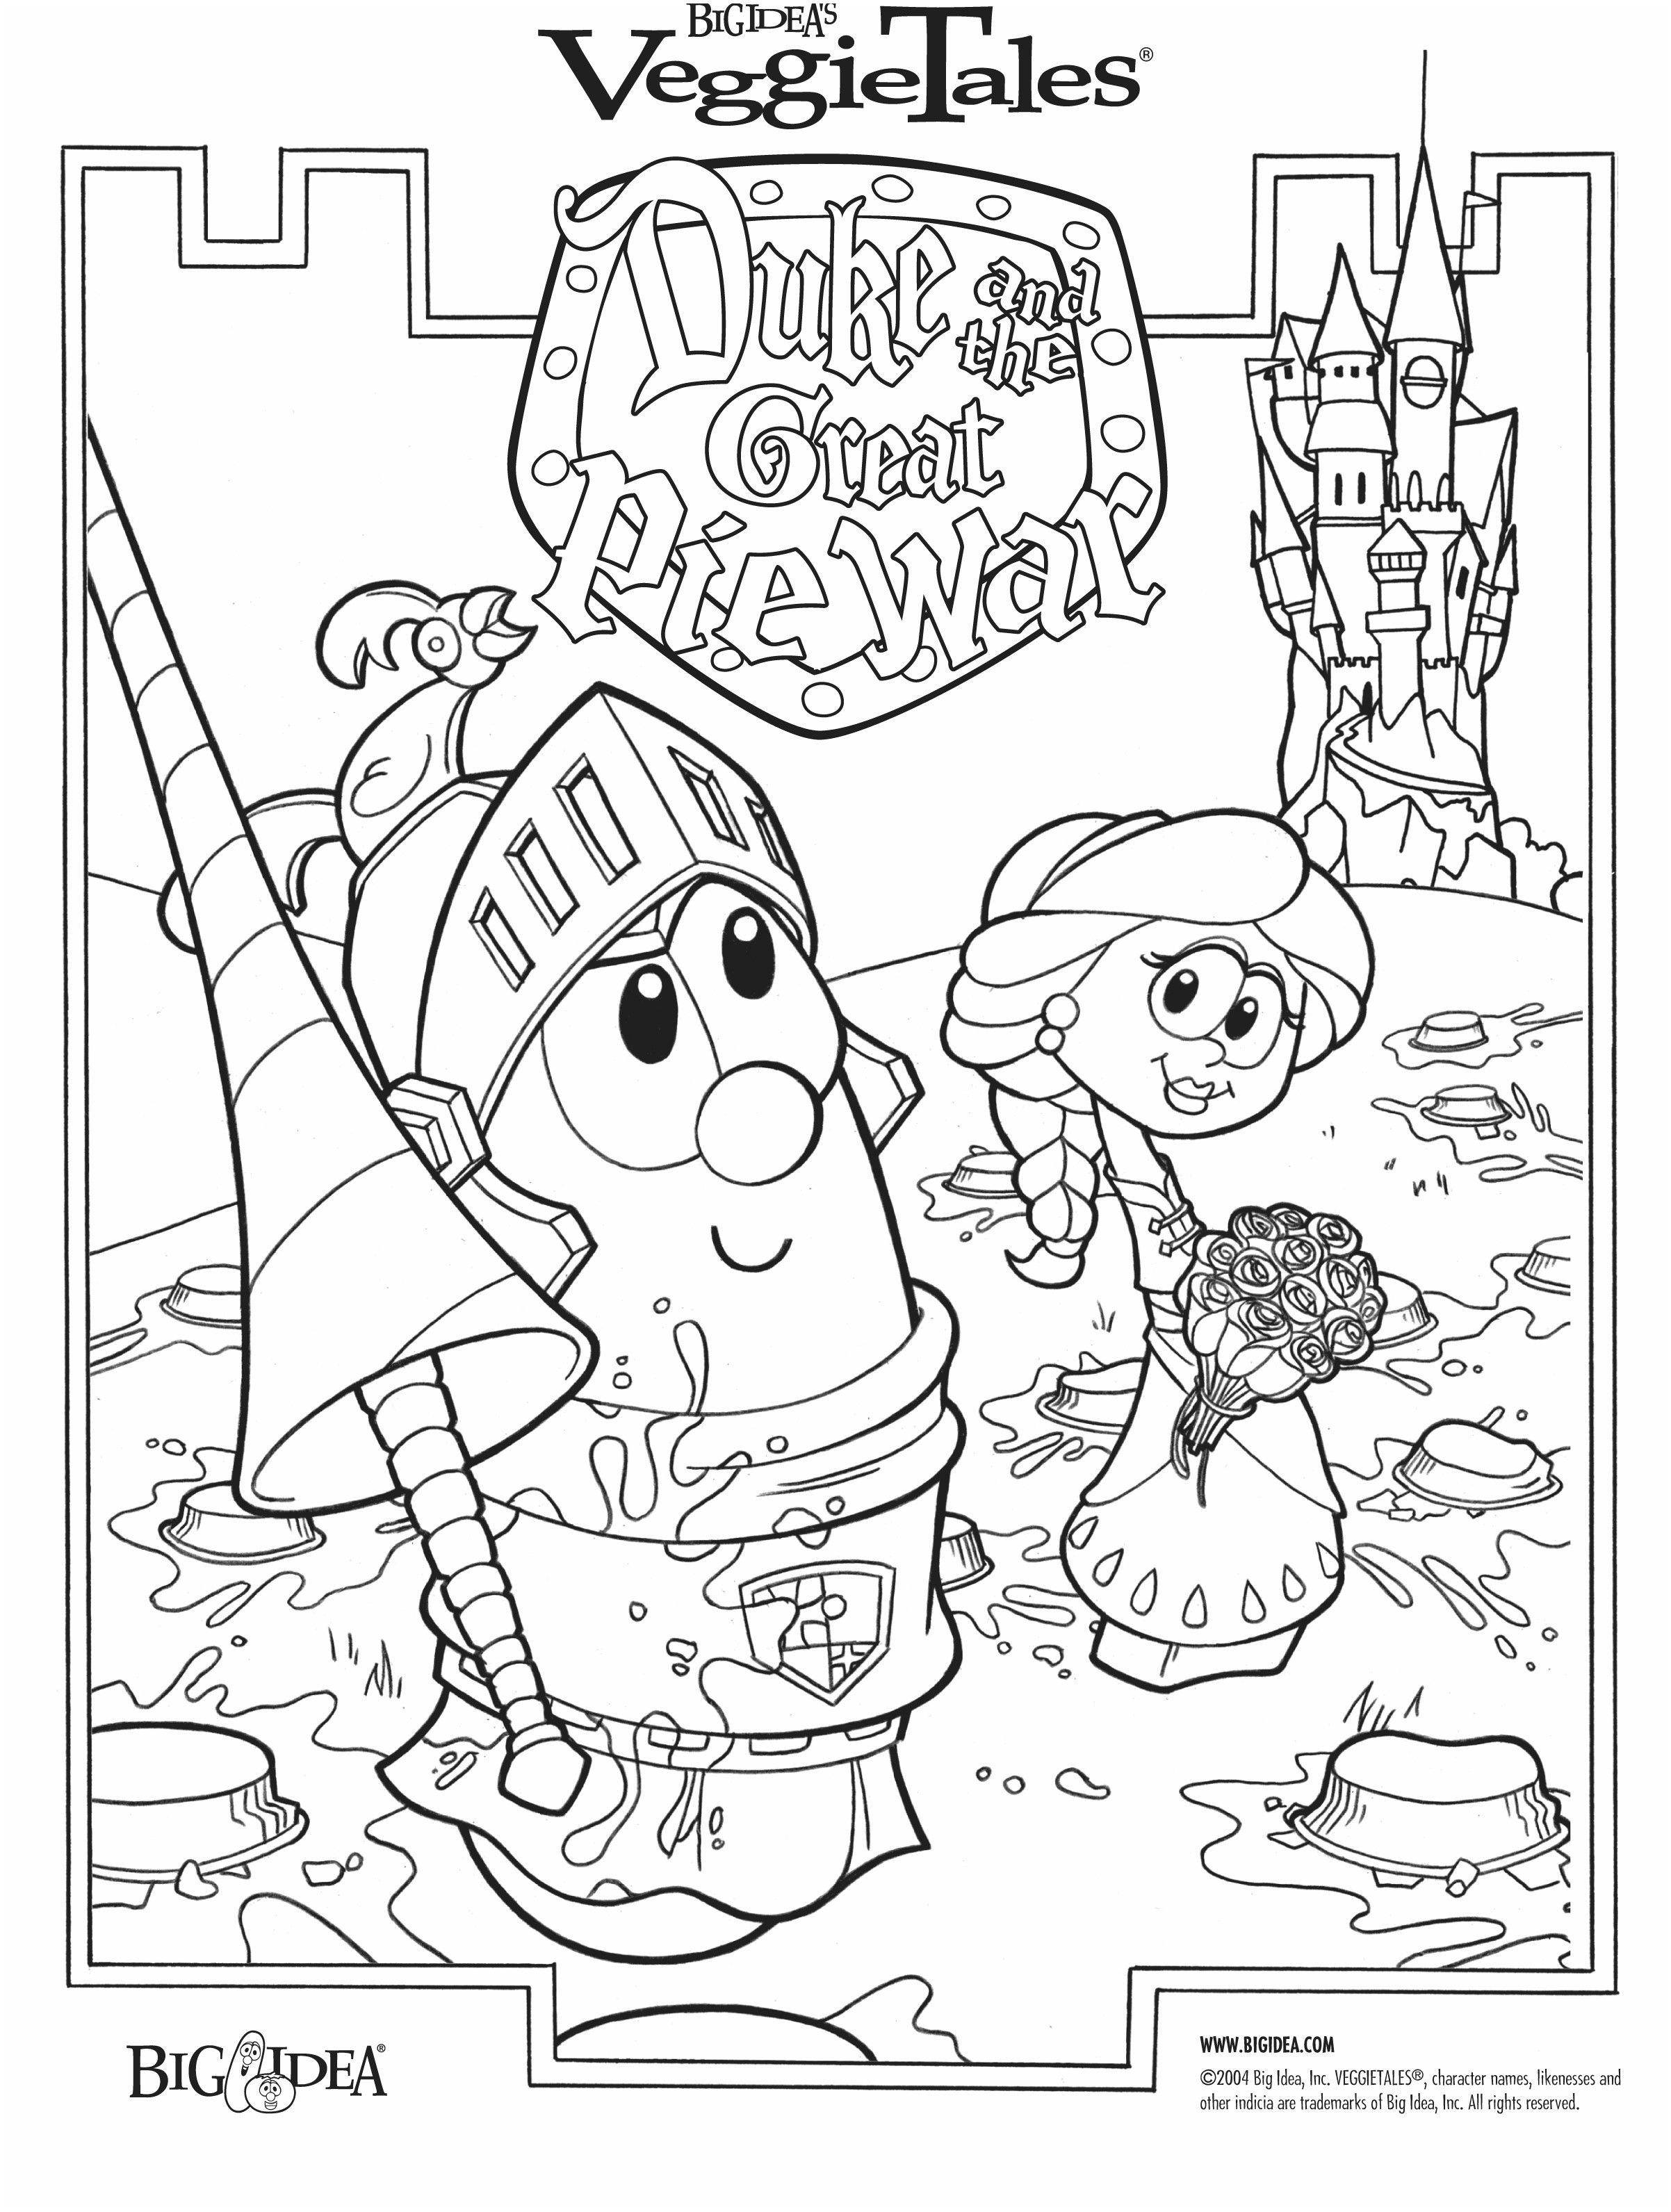 coloring pages bible stories Collection-Fresh Duke the Great Pie War Bible Story Coloring Pages for Free Bible Coloring Pages 11-i